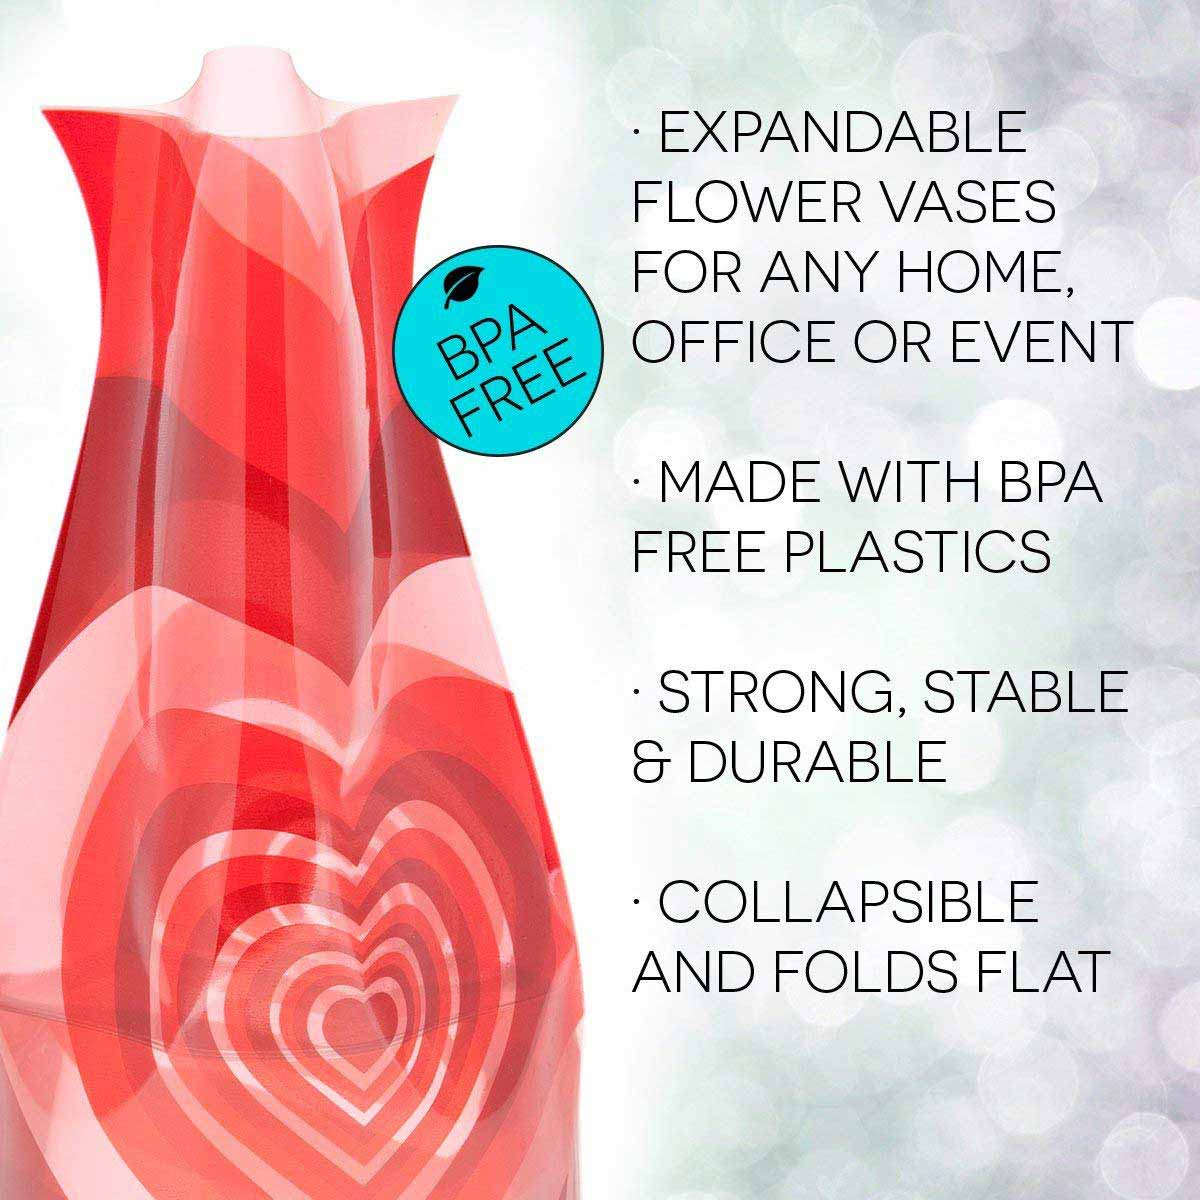 Expandable and Collapsible Vase VenusDeModgy | The Design Gift Shop